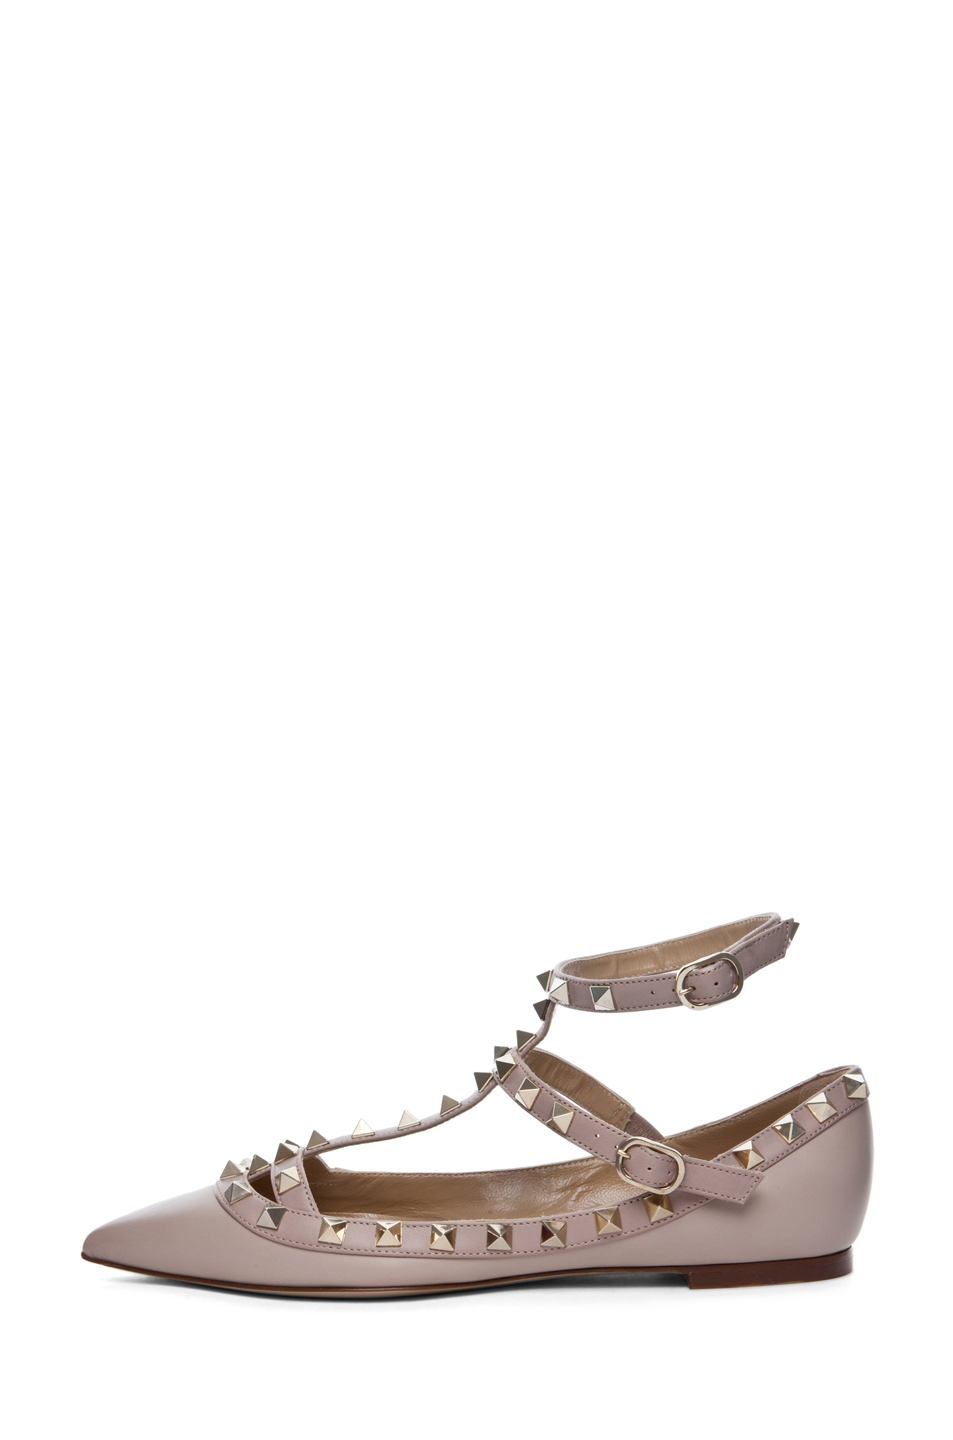 valentino rockstud ballerina flat in powder in beige powder lyst. Black Bedroom Furniture Sets. Home Design Ideas